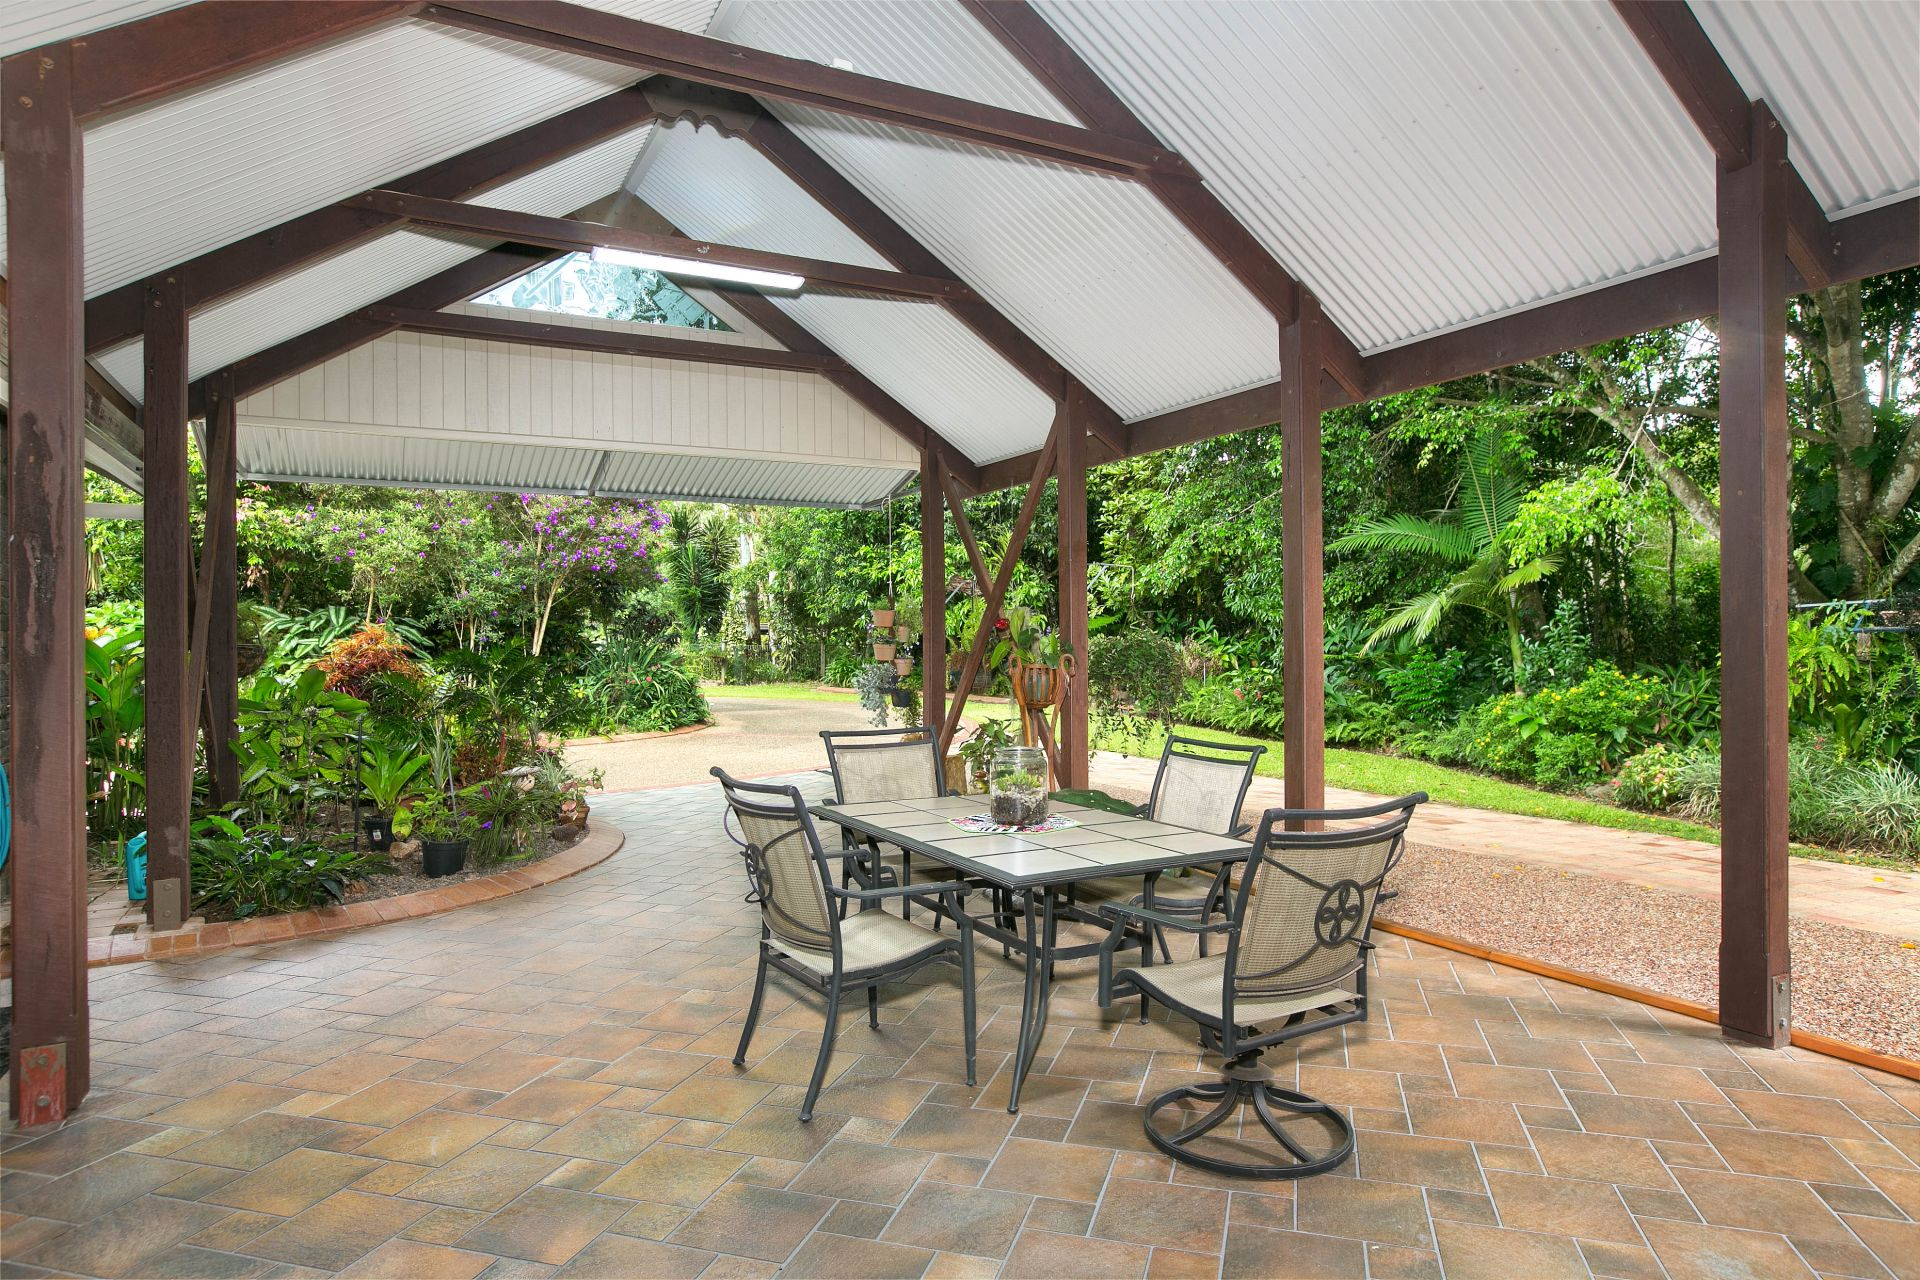 Additional photo for property listing at Idyllic tablelands rainforest retreat with breathtaking grounds   Queensland,4883 Austrália